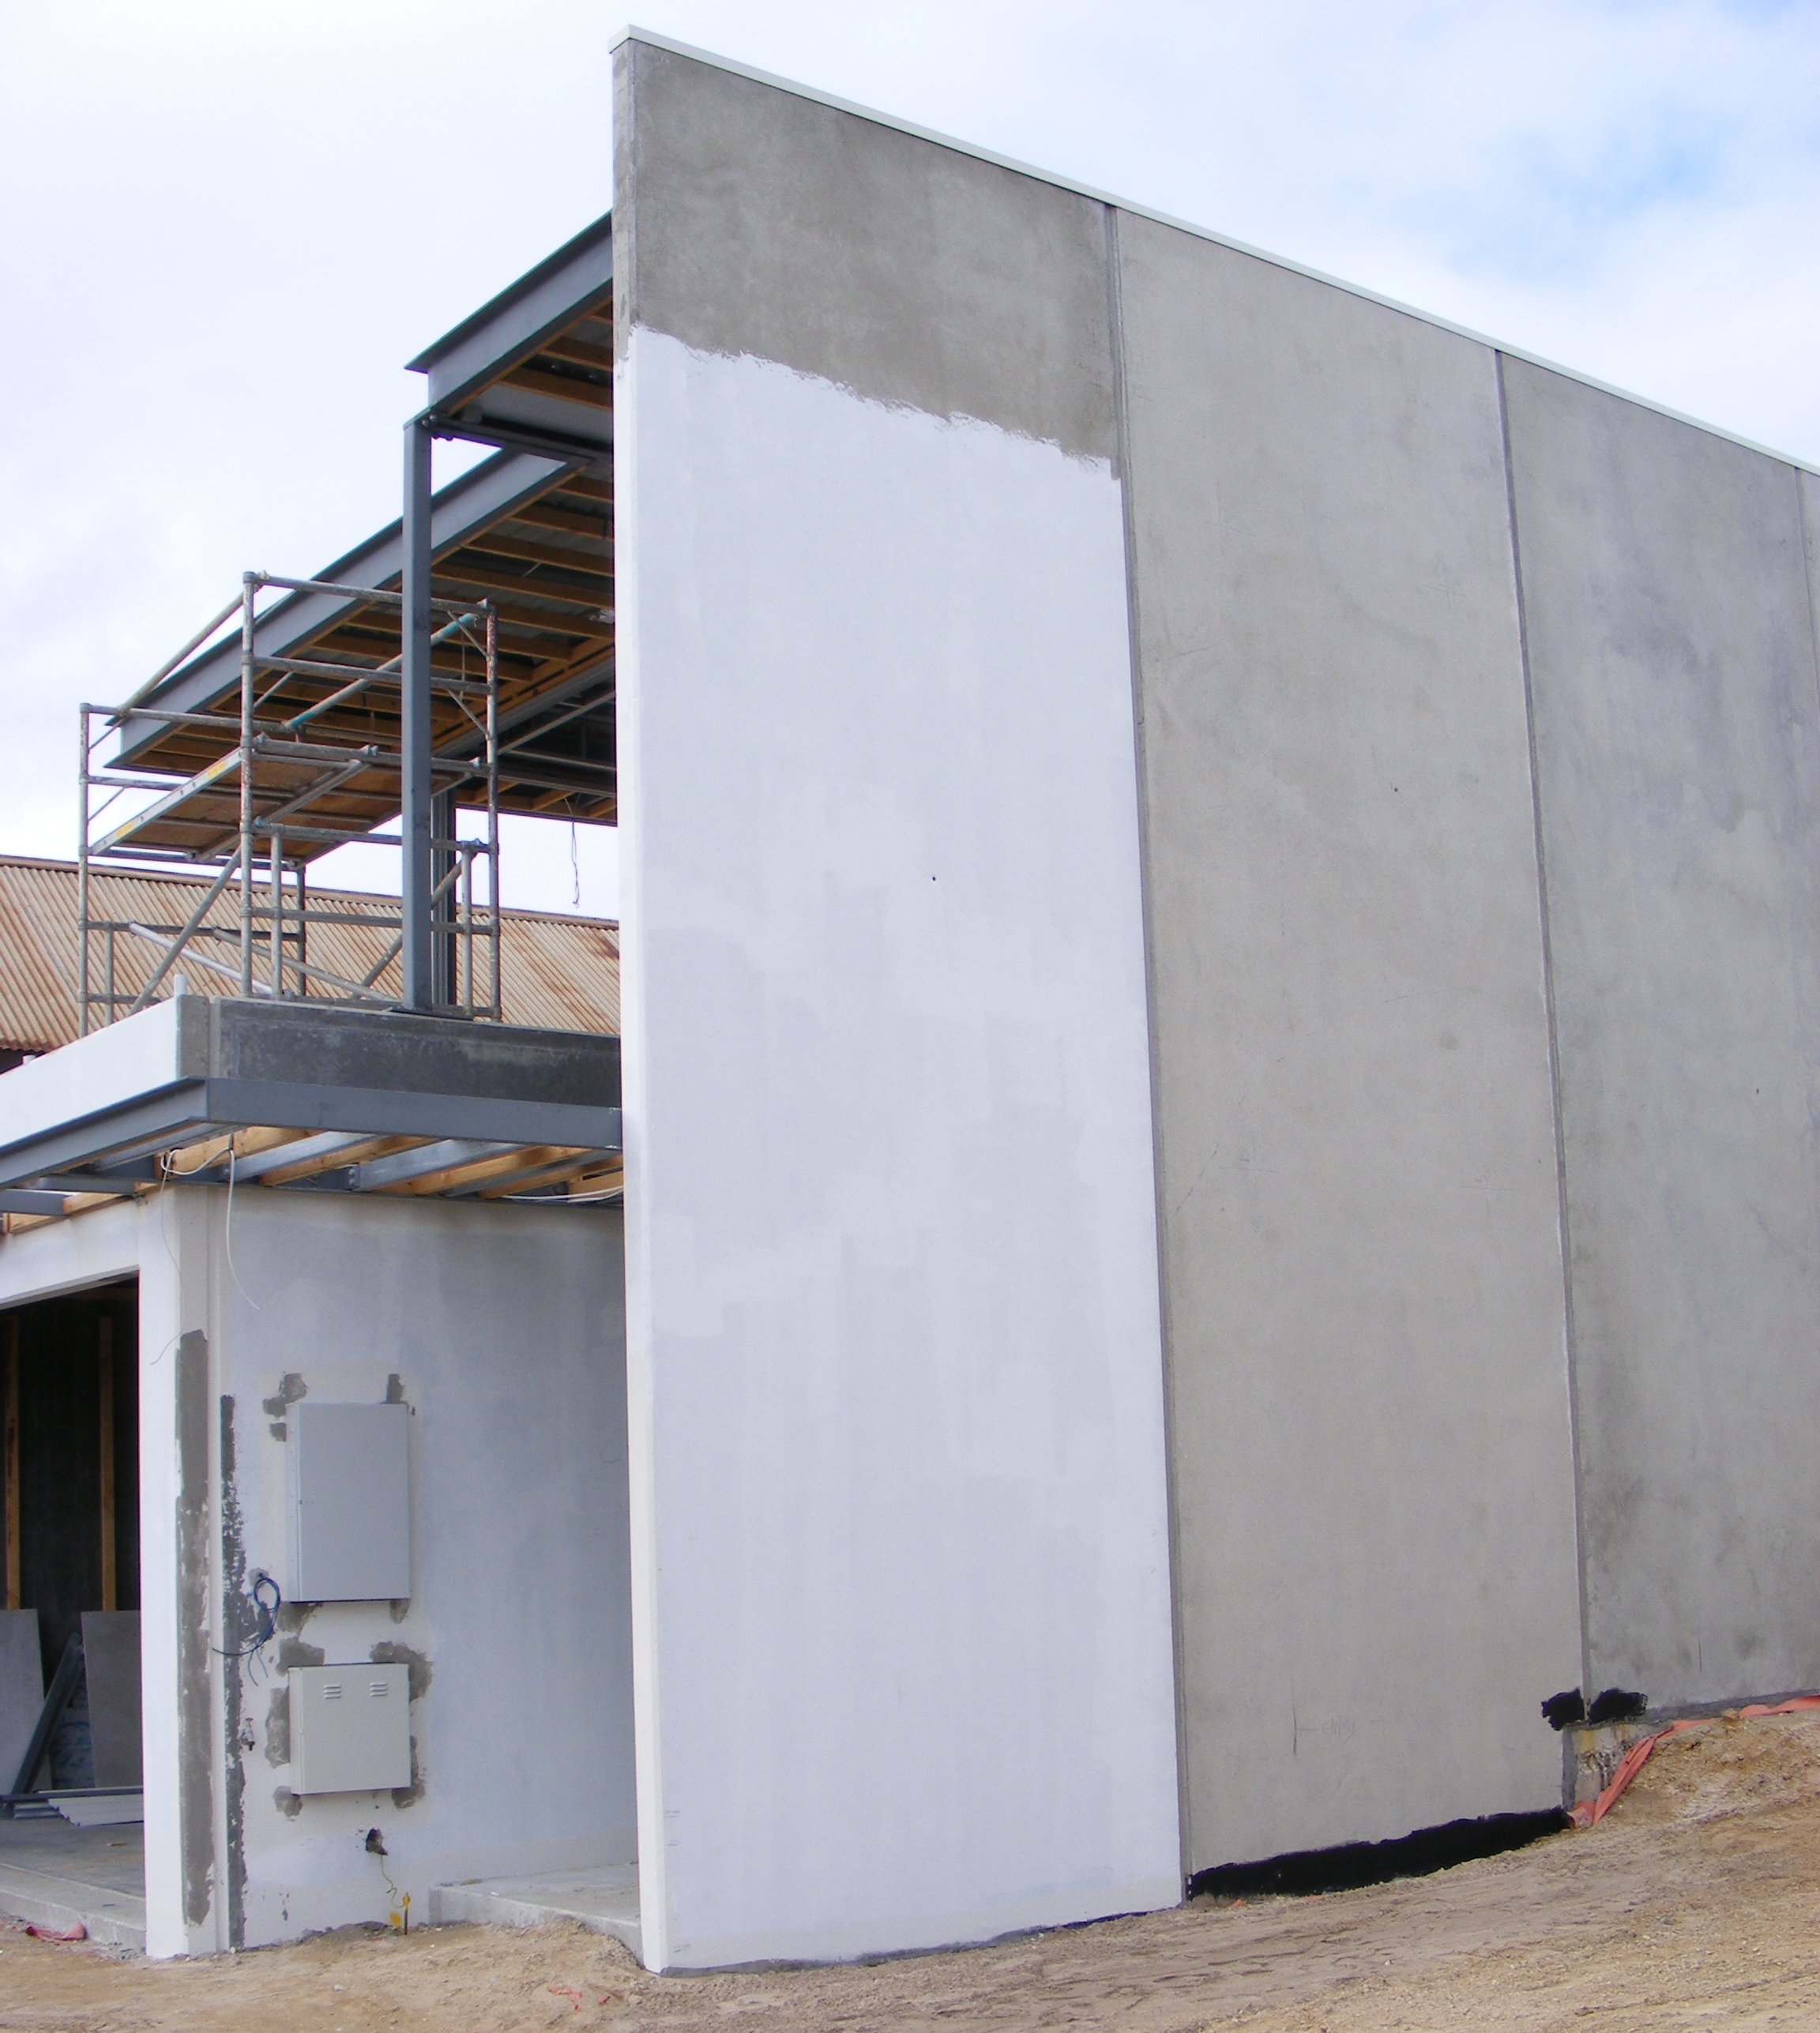 File:Precast concrete house in construction.JPG - Wikimedia Commons